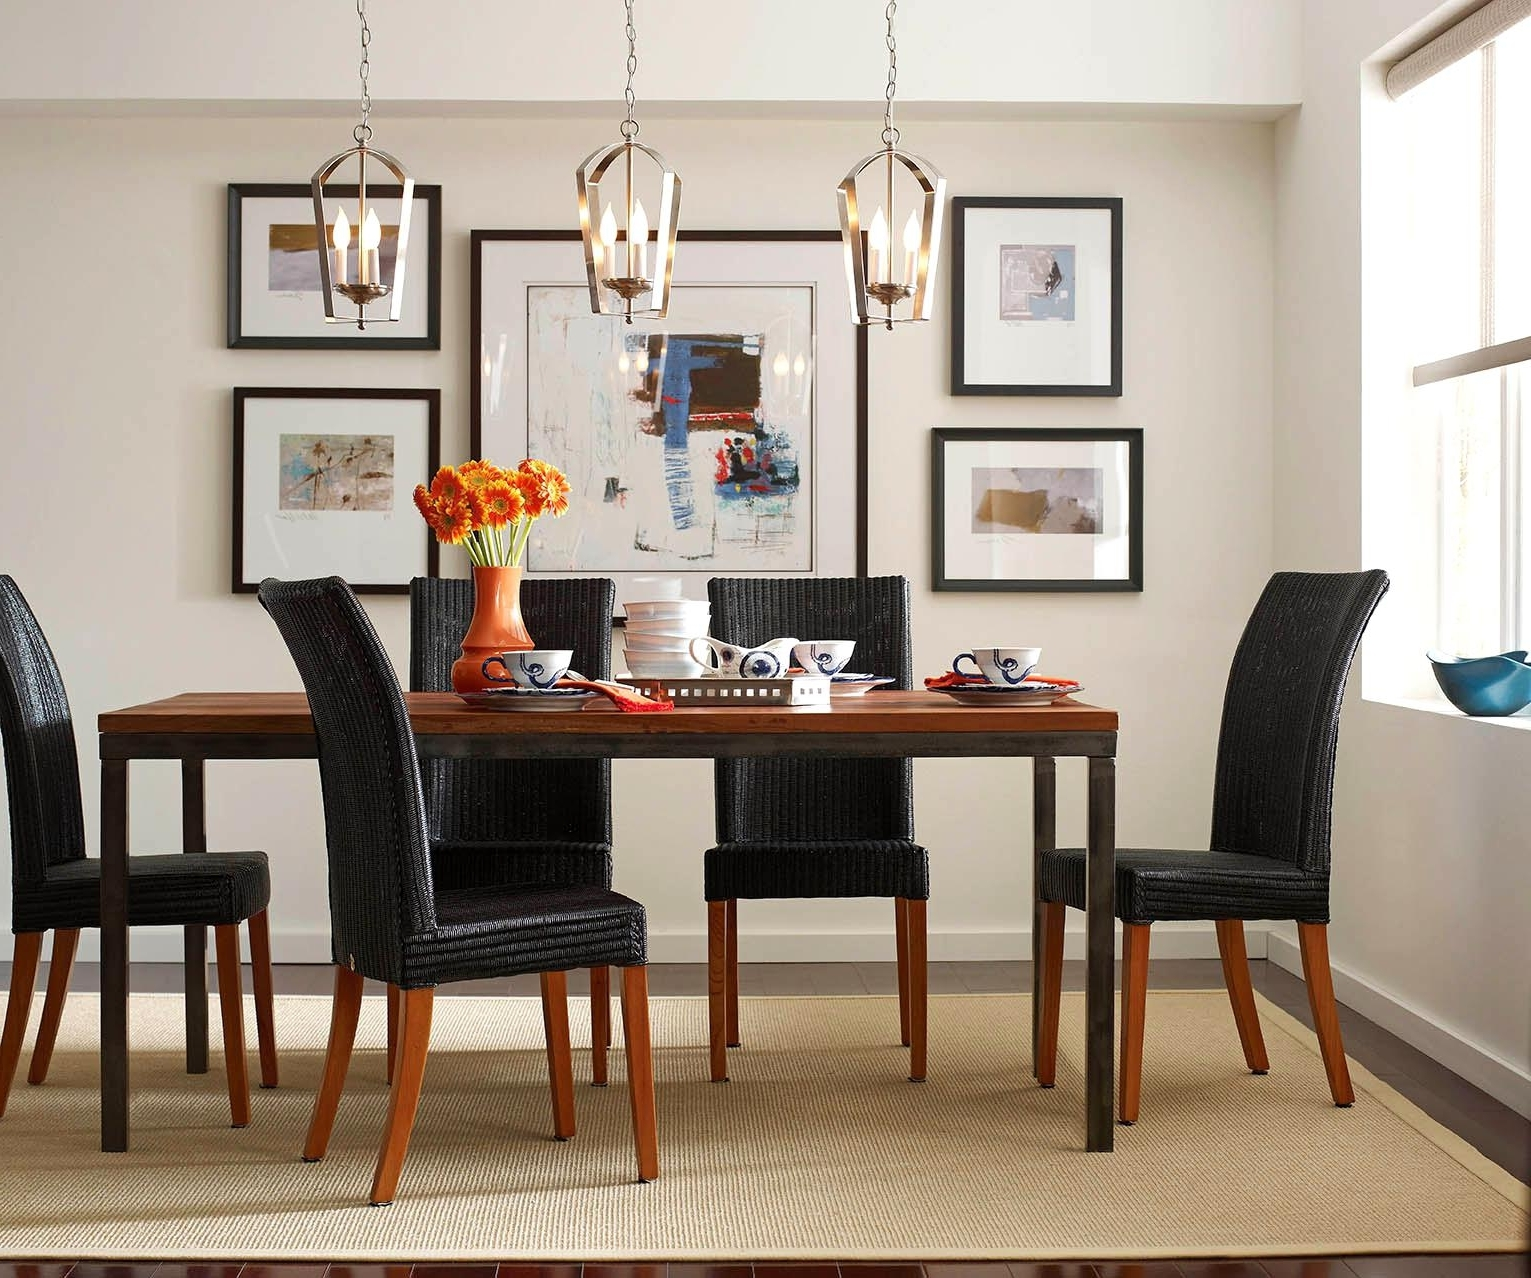 Dining Tables Ceiling Lights With Regard To Well Known Enjoyable Pendant Lights Dining Room Hanging Delier Dining Room (View 9 of 25)